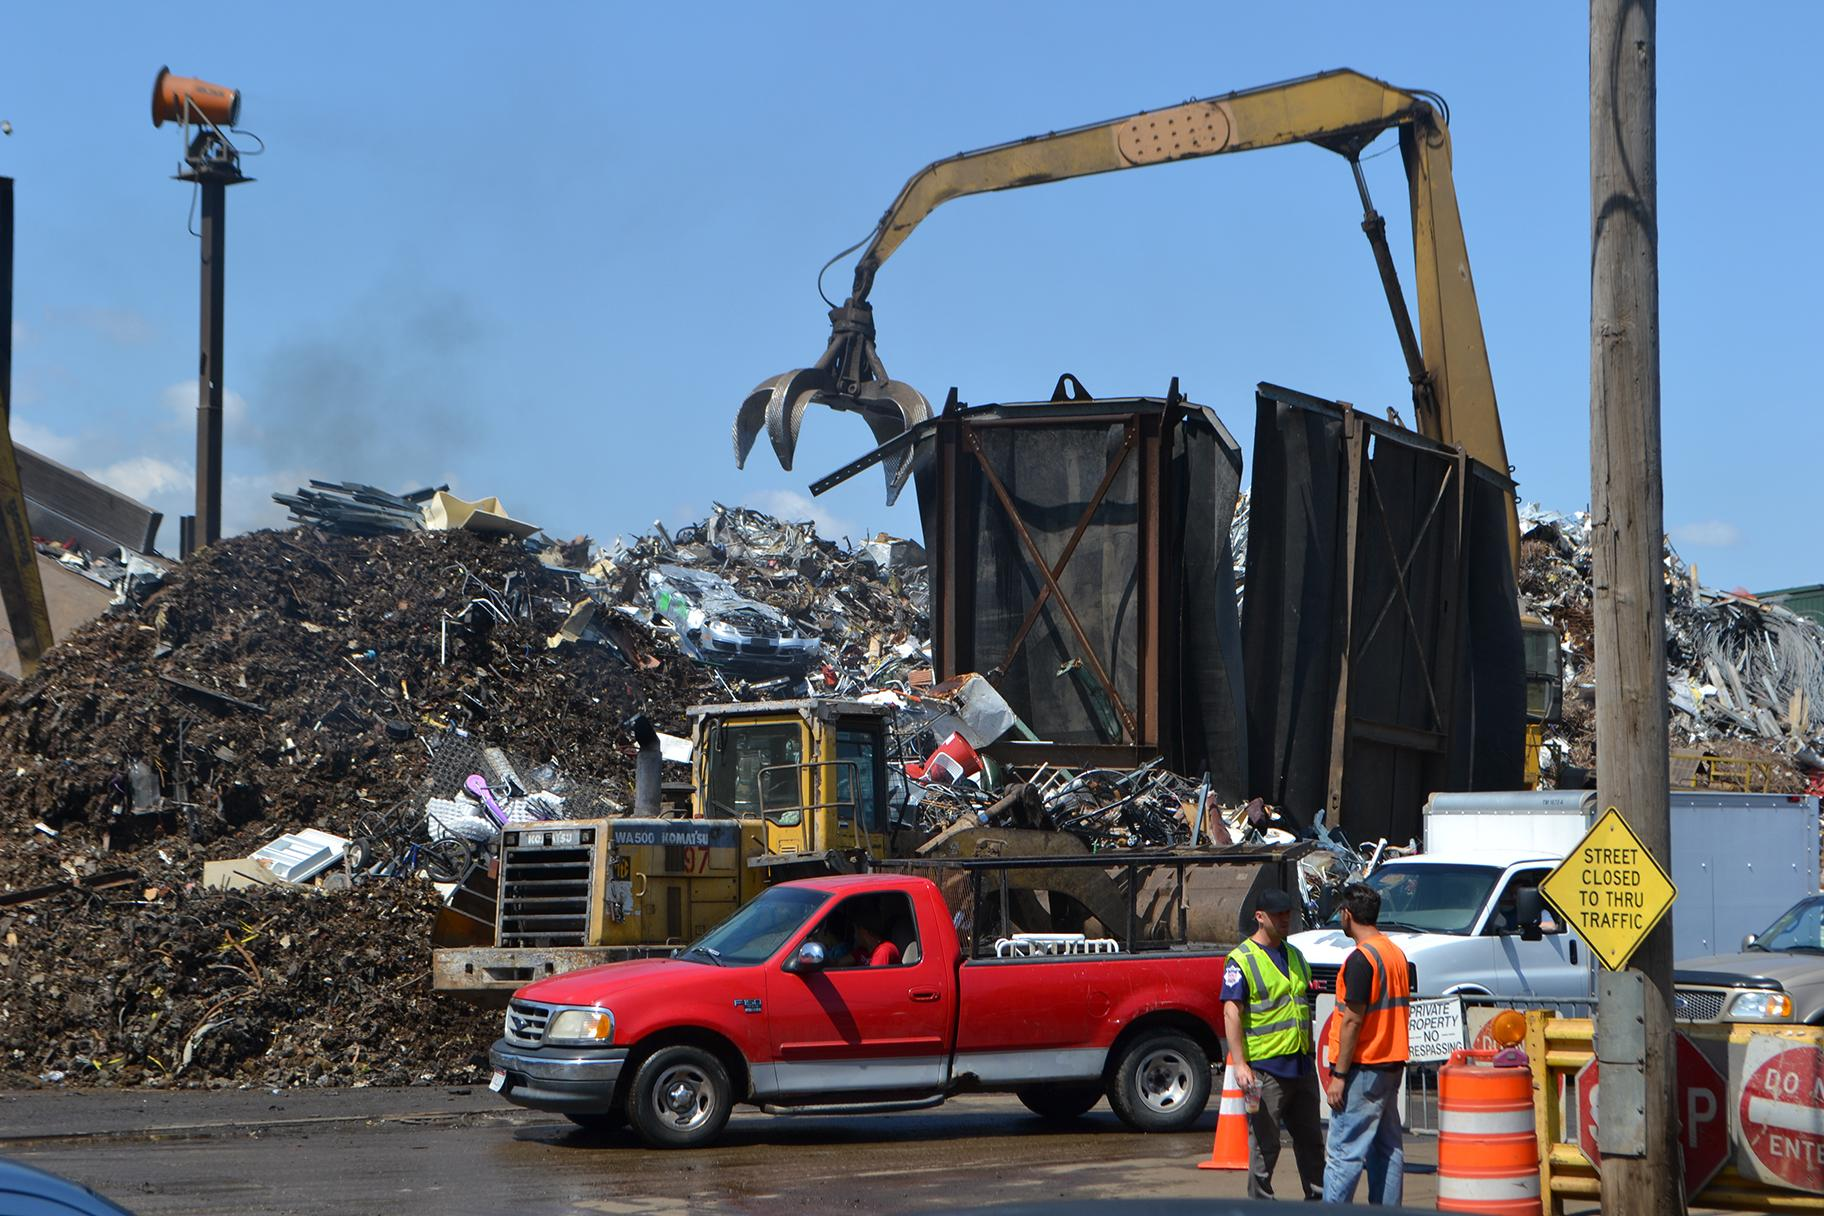 A file photo of General Iron's scrap metal yard at 1909 N. Clifton Ave. in Lincoln Park. (Alex Ruppenthal / WTTW News)